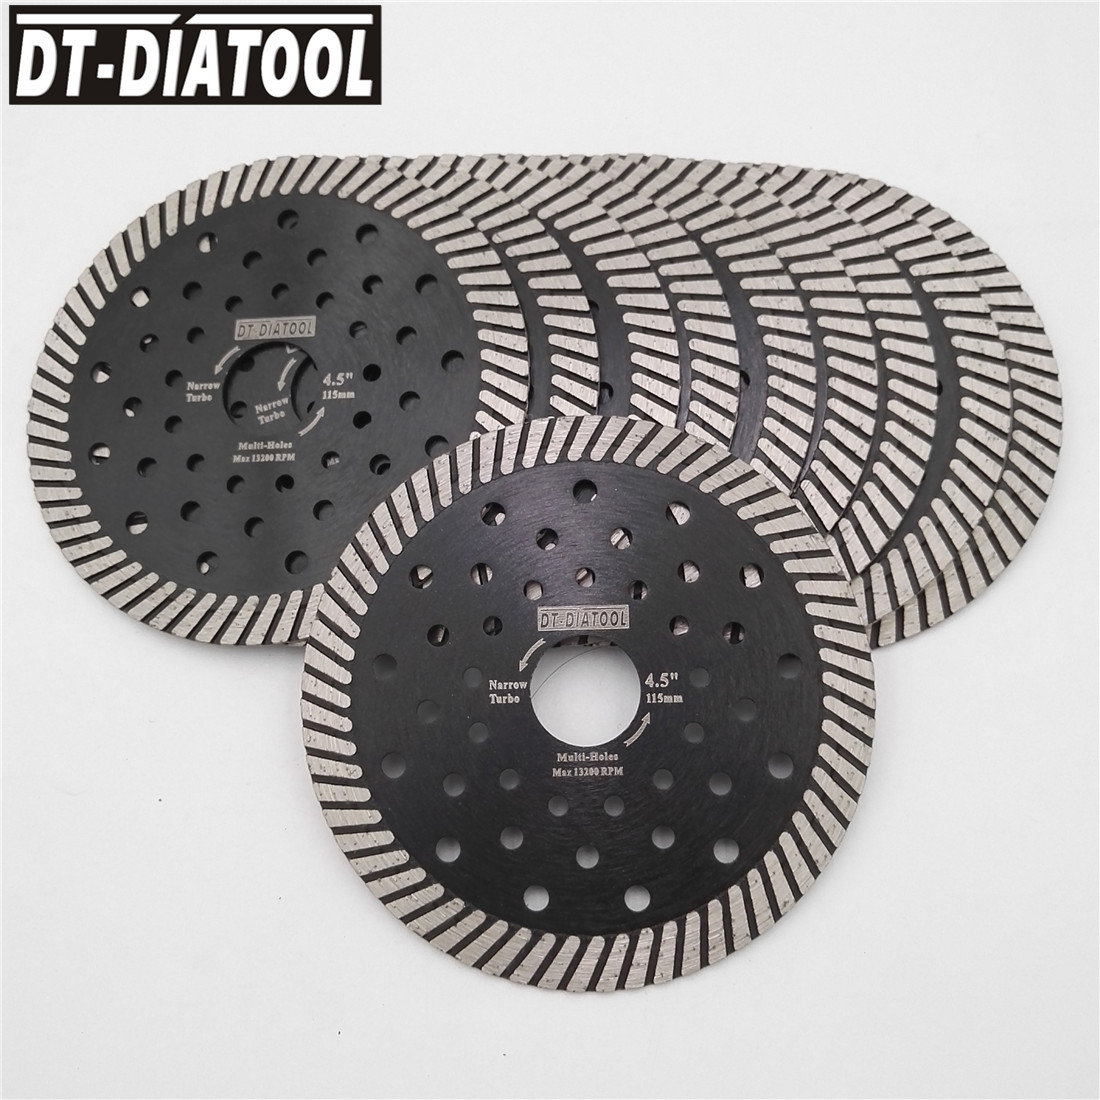 DT-DIATOOL 10pcs Dia 115mm/4.5 Inch Diamond Hot Pressed Narrow Turbo Saw Blades For Granite Marble Cutting Disc With Multi Holes